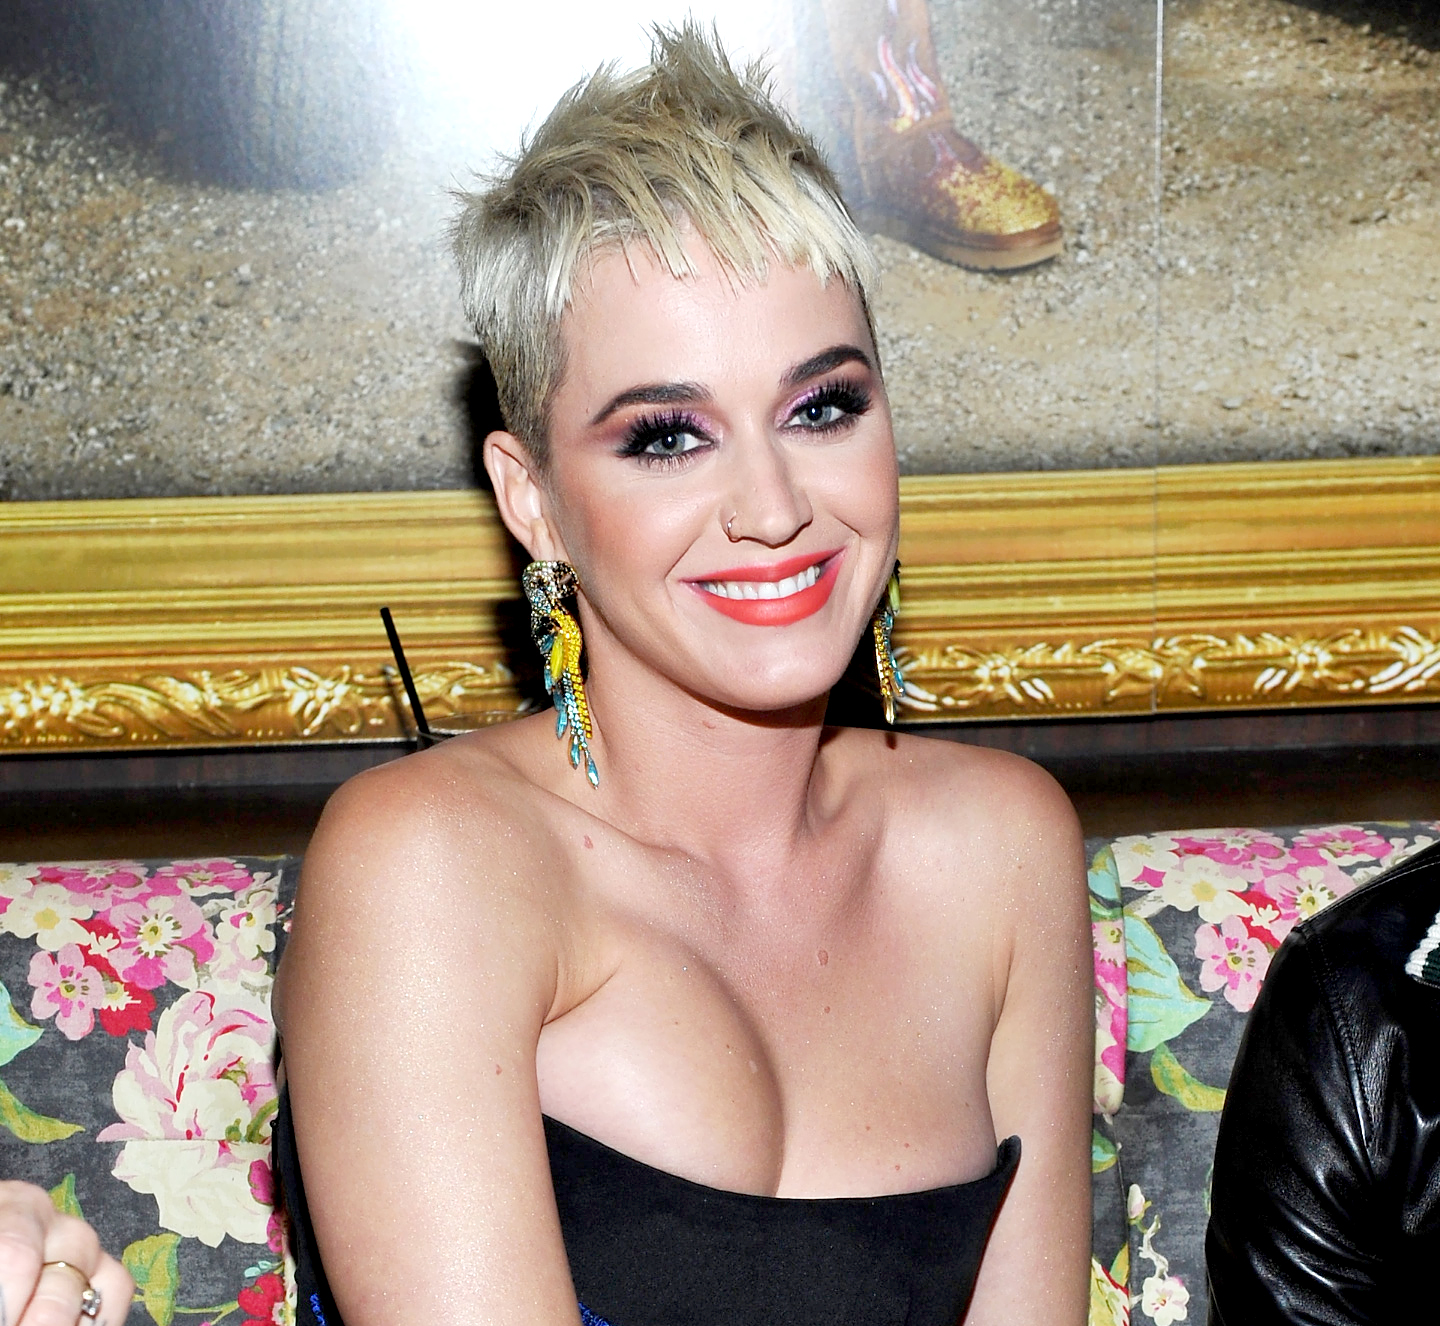 ranks-exes katy perry orlando bloom - The American Idol judge ranked her famous exes' performances in bed during her 72-hour YouTube livestream. From best to worst, she said John Mayer , Bloom and Diplo .